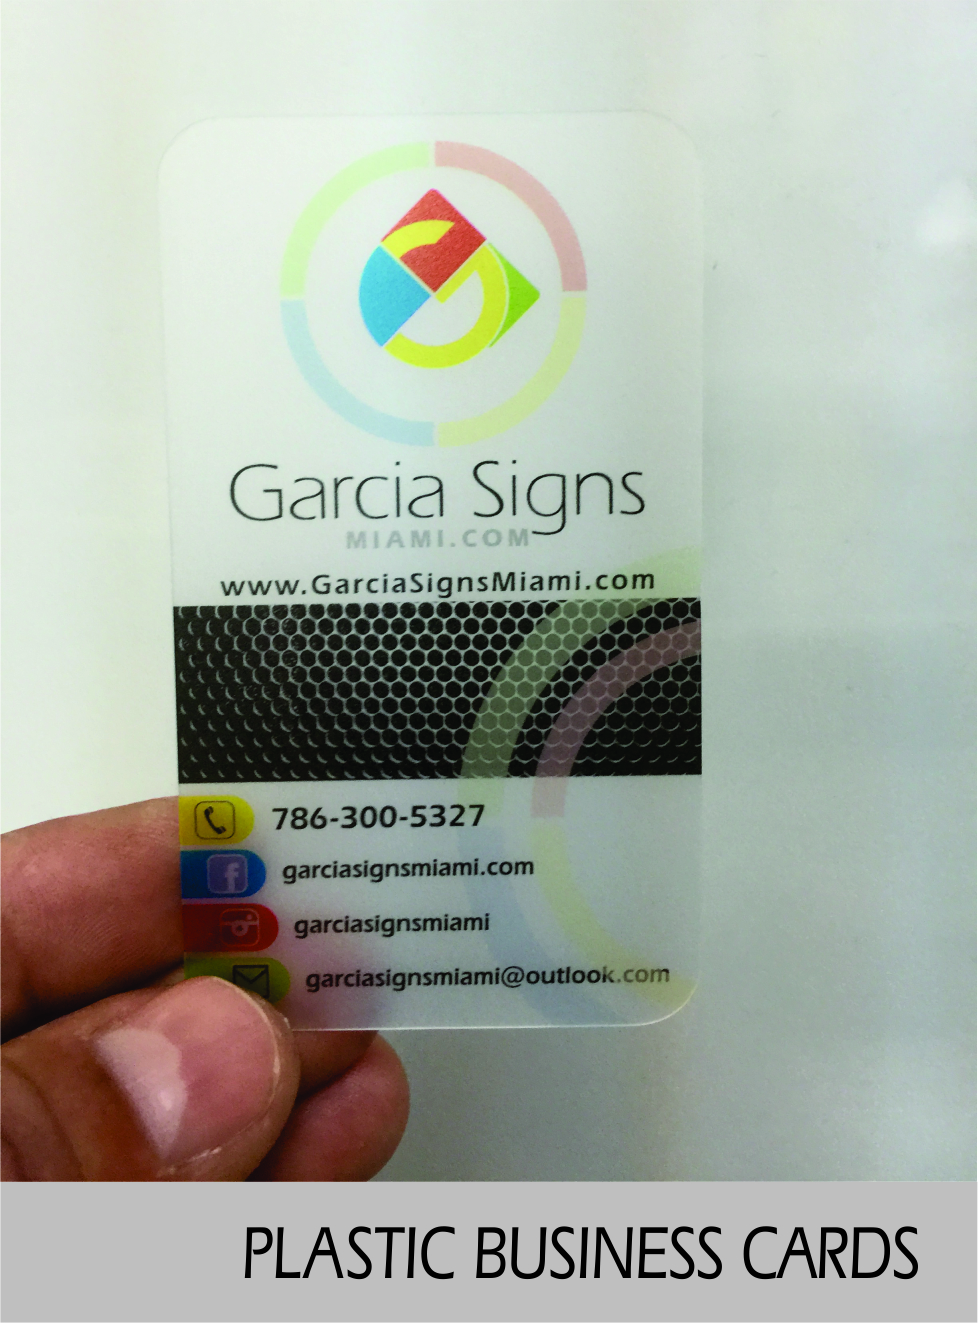 Business Cards 3 5×2″ – Garcia Signs Miami